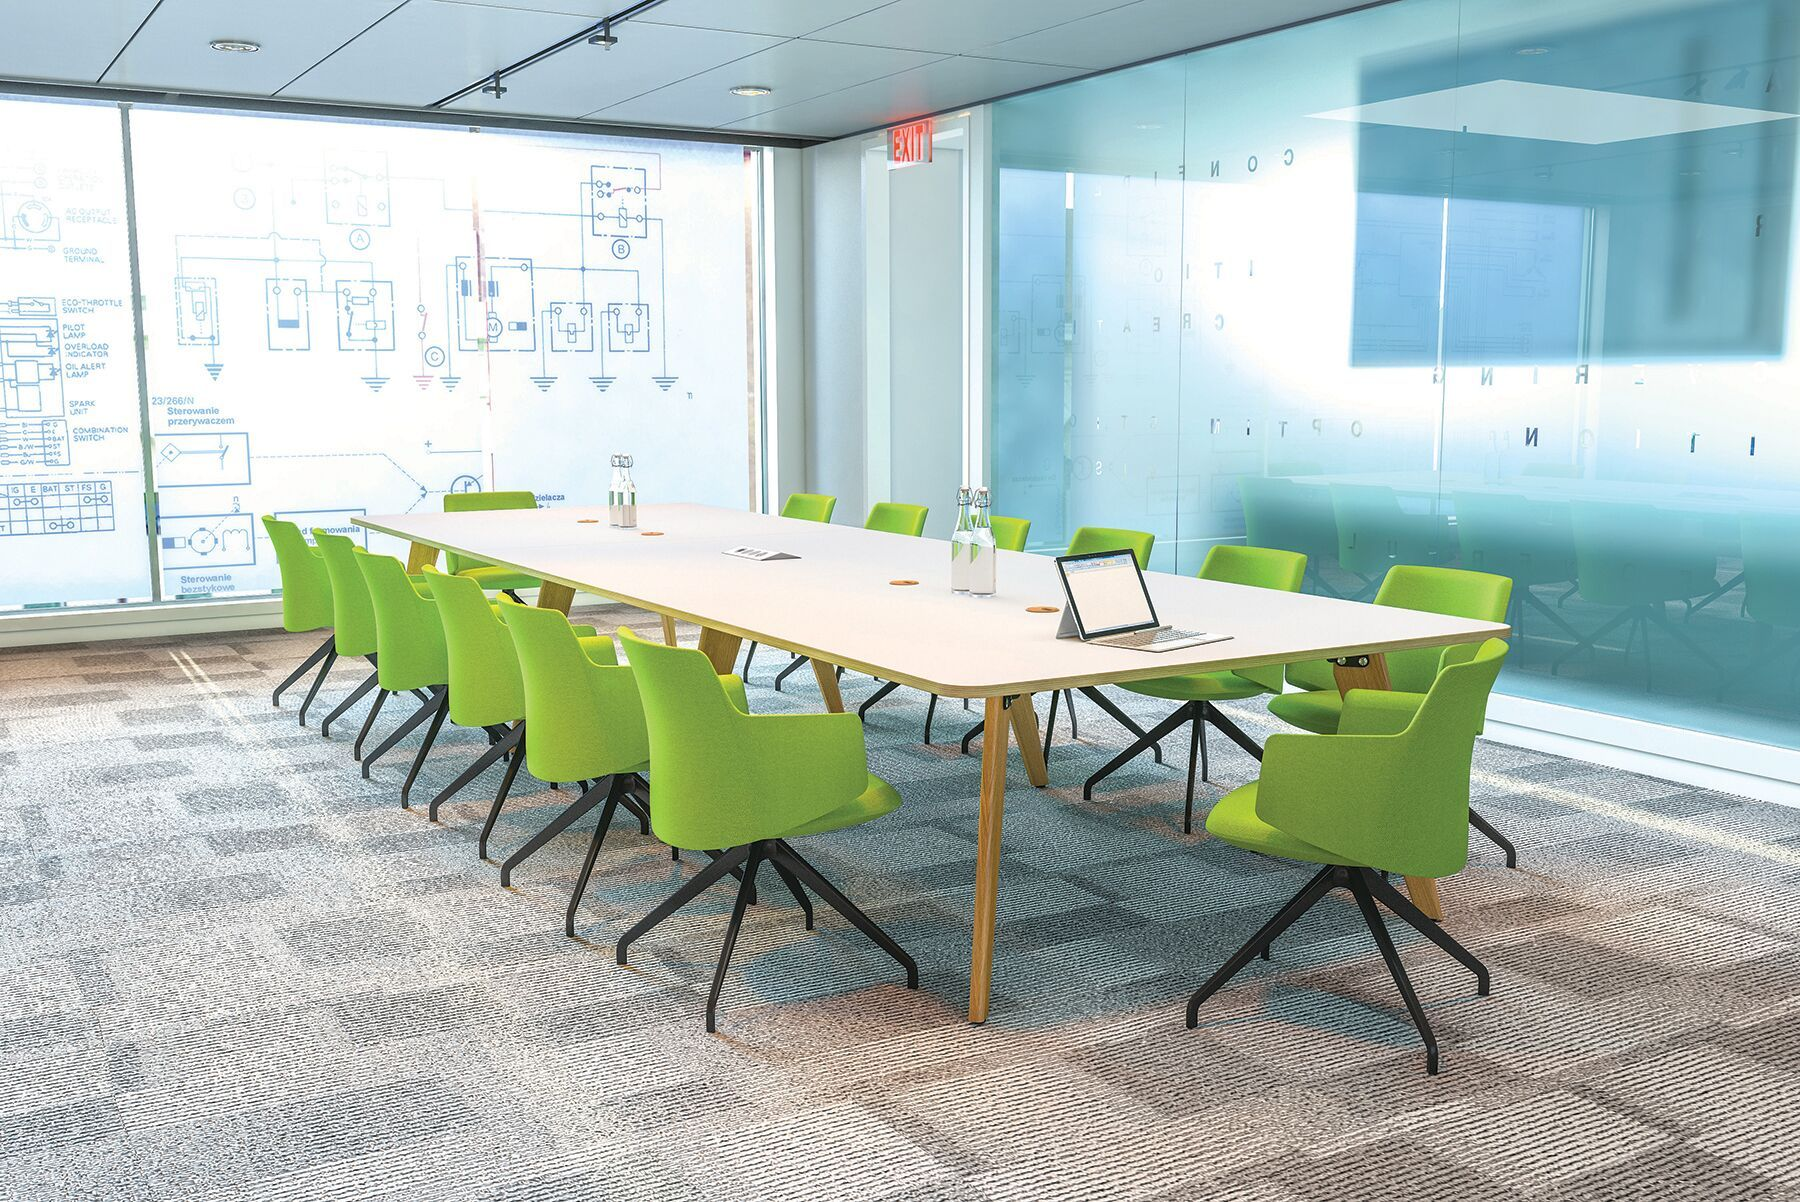 Pin by BT Office Furniture on Boardroom and Meeting Tables in 2019